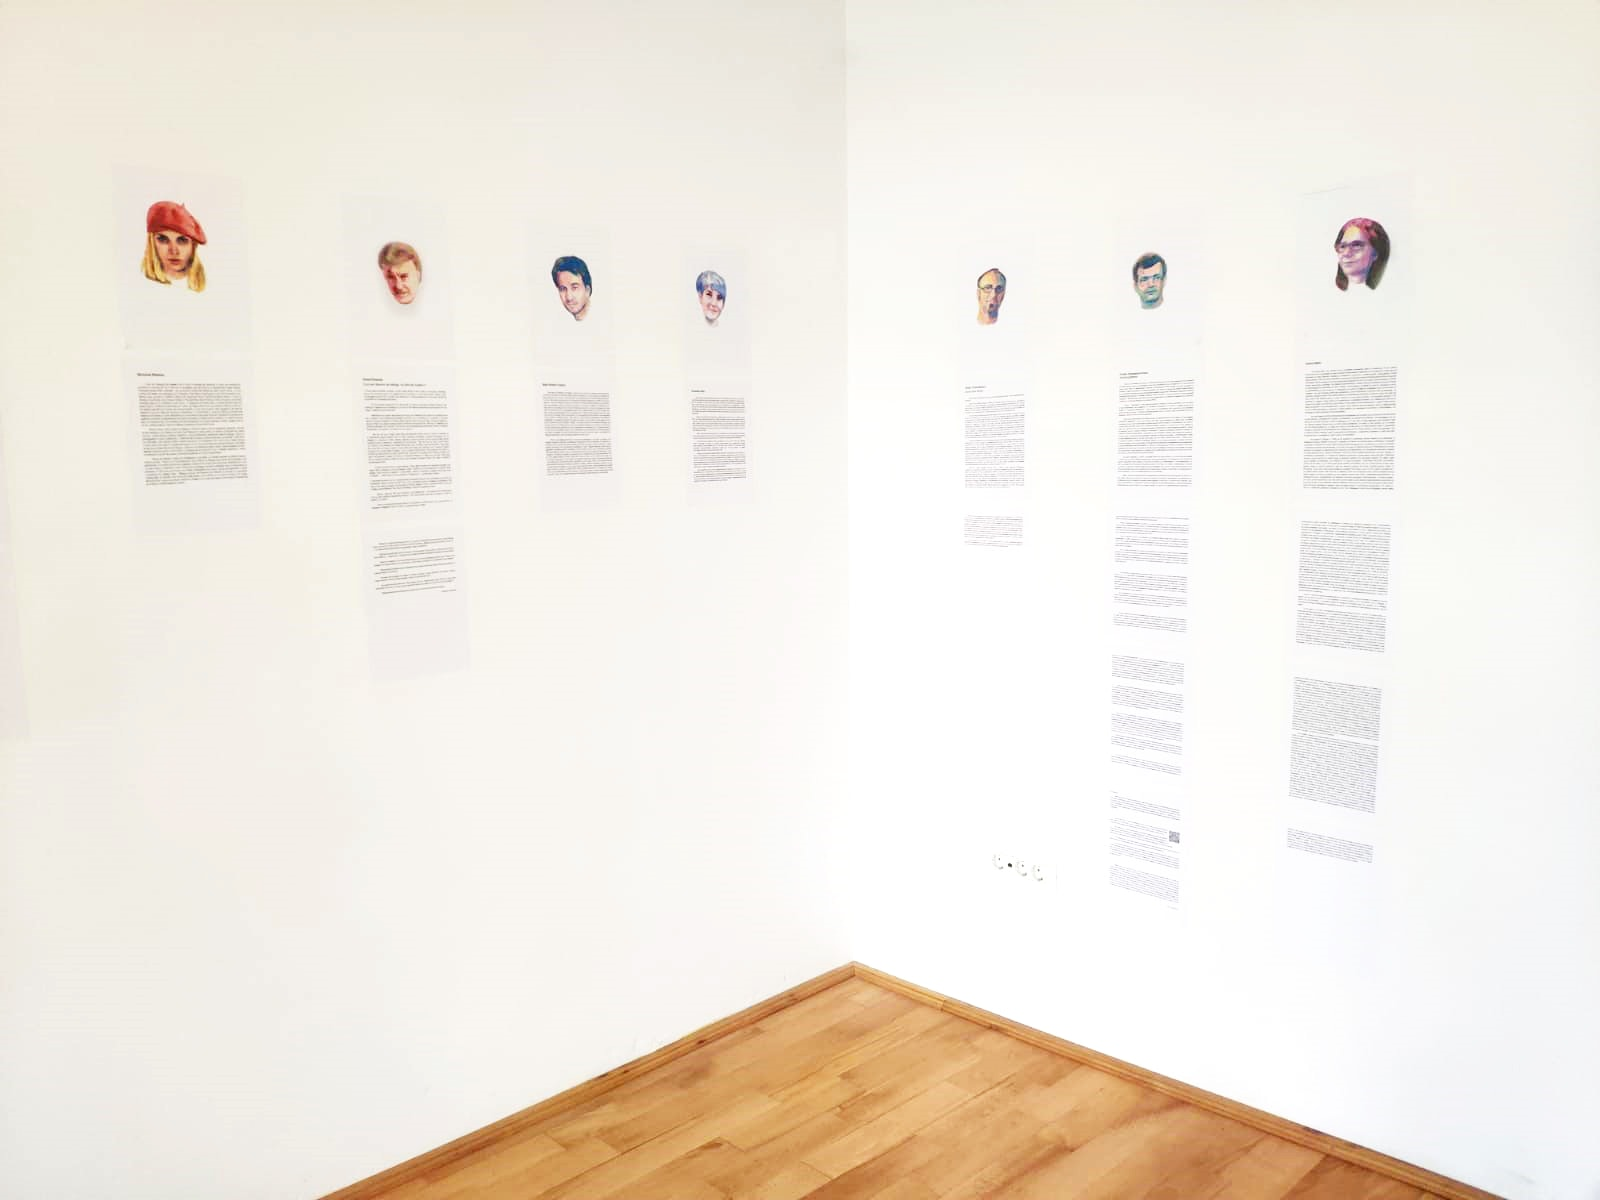 Beatrice Anghelache, How did I become leftist? What left means for you?, Watercolor portraits and texts as political biographies, 2021. Installation view. © Florin Bobu